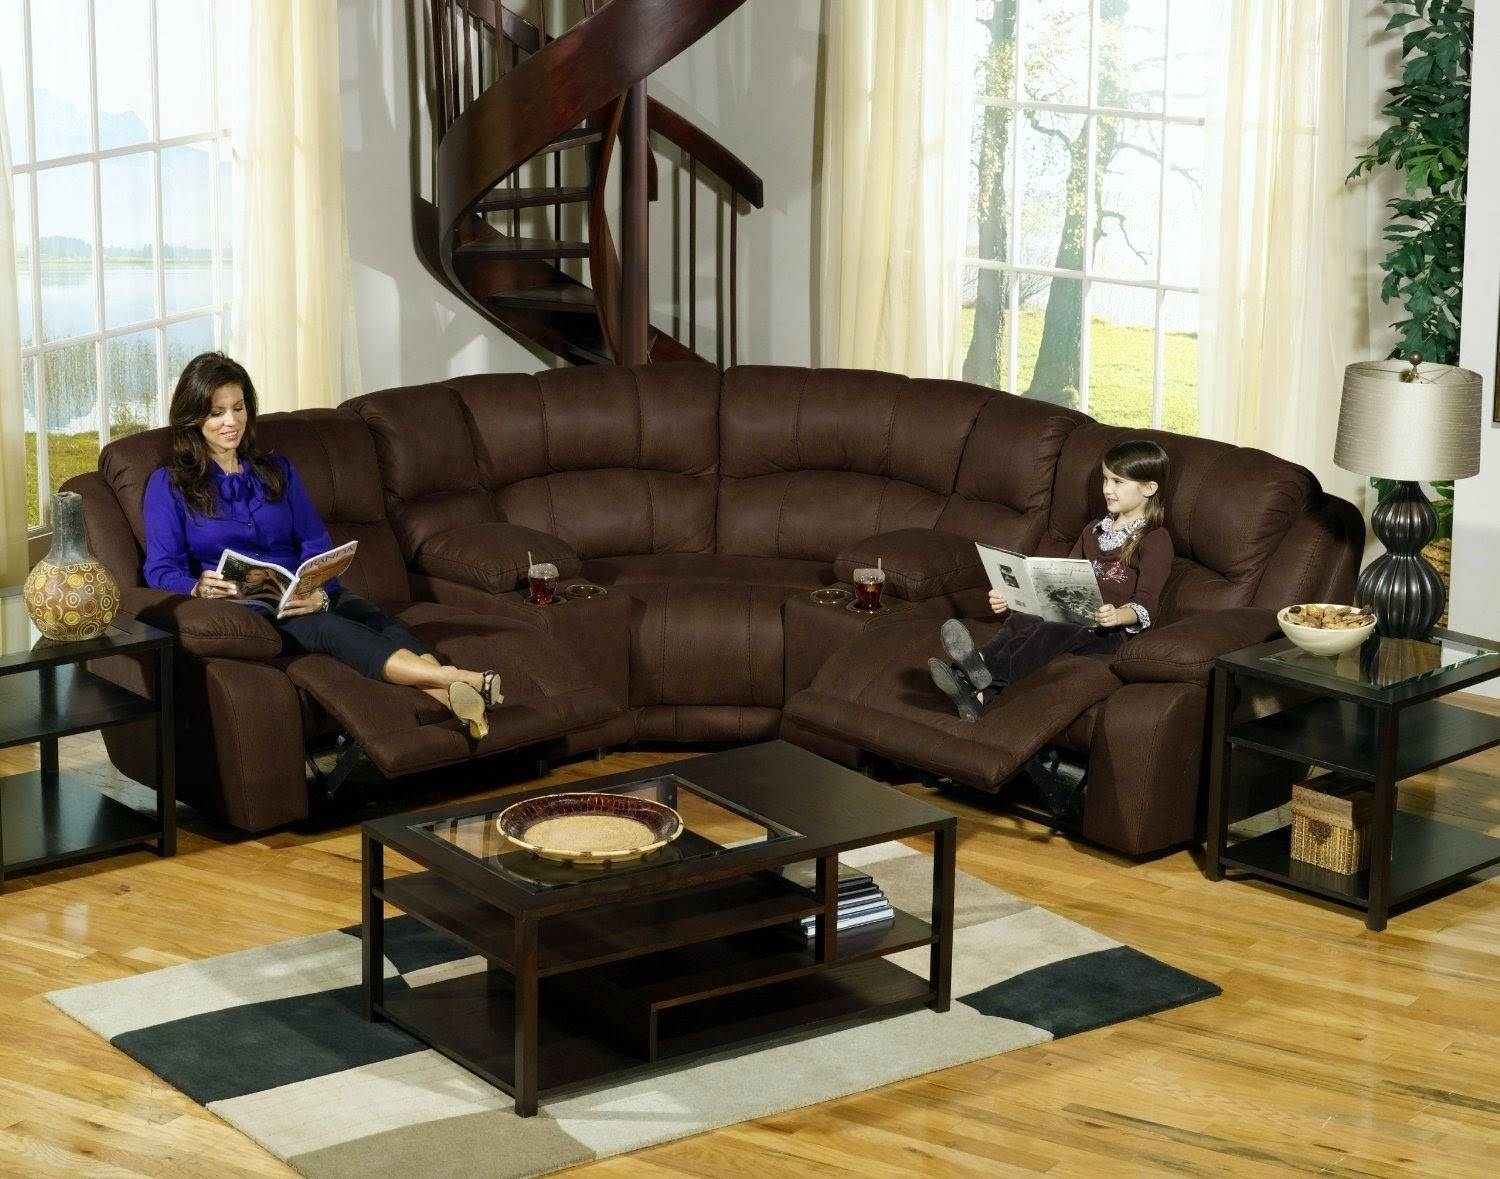 Furniture: Fantastic Sectional Couches With Recliners For Your throughout Leather Modular Sectional Sofas (Image 11 of 30)